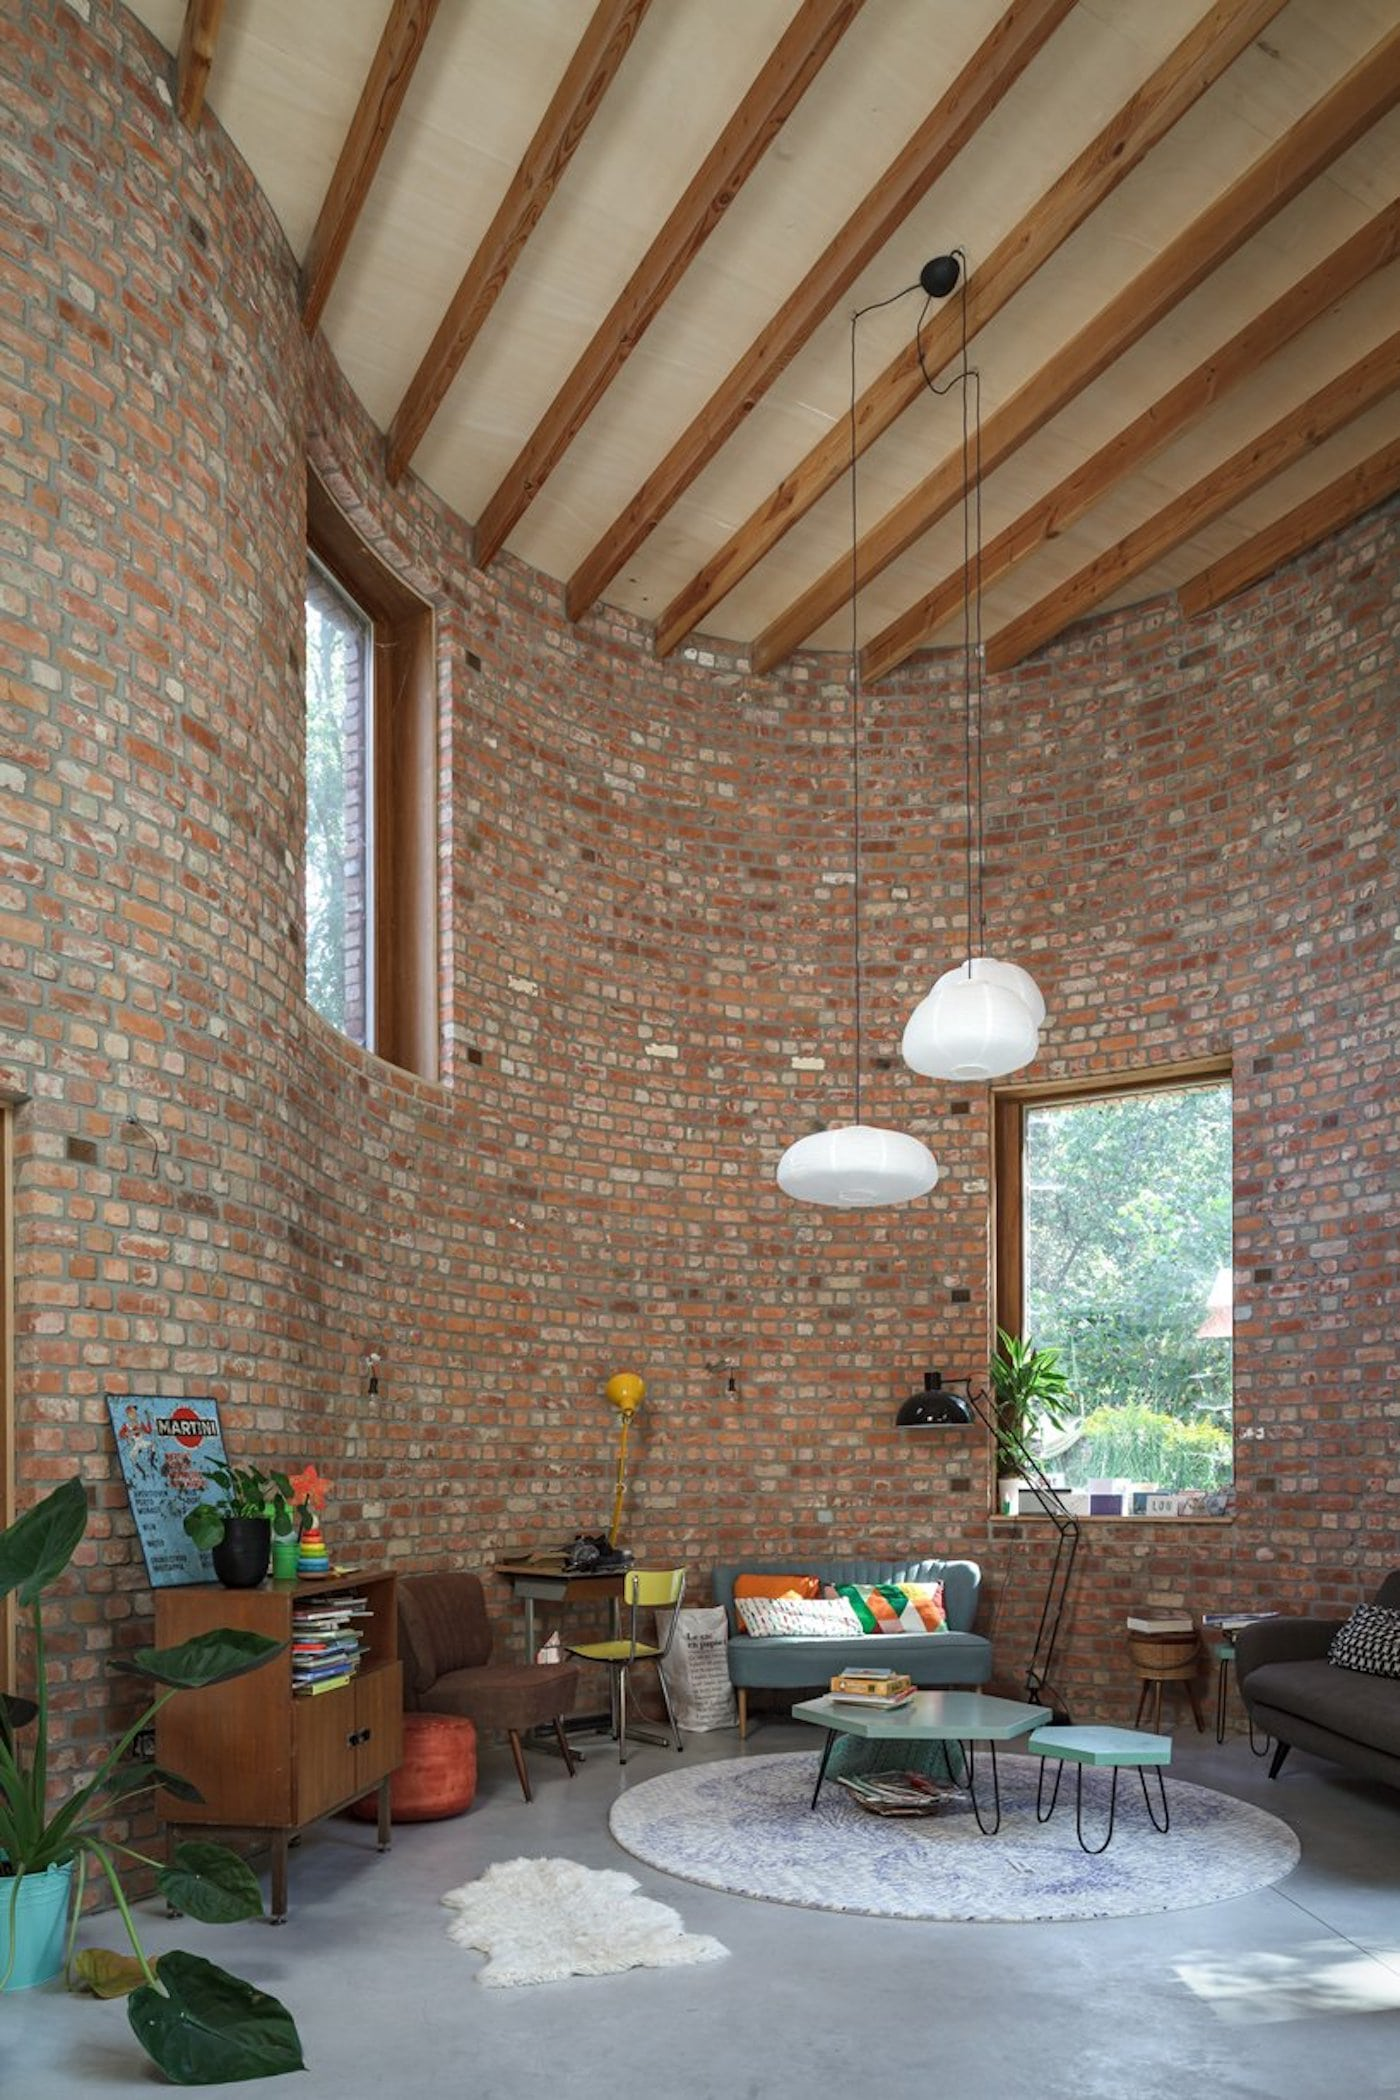 Recycled brick interior with plywood ceiling